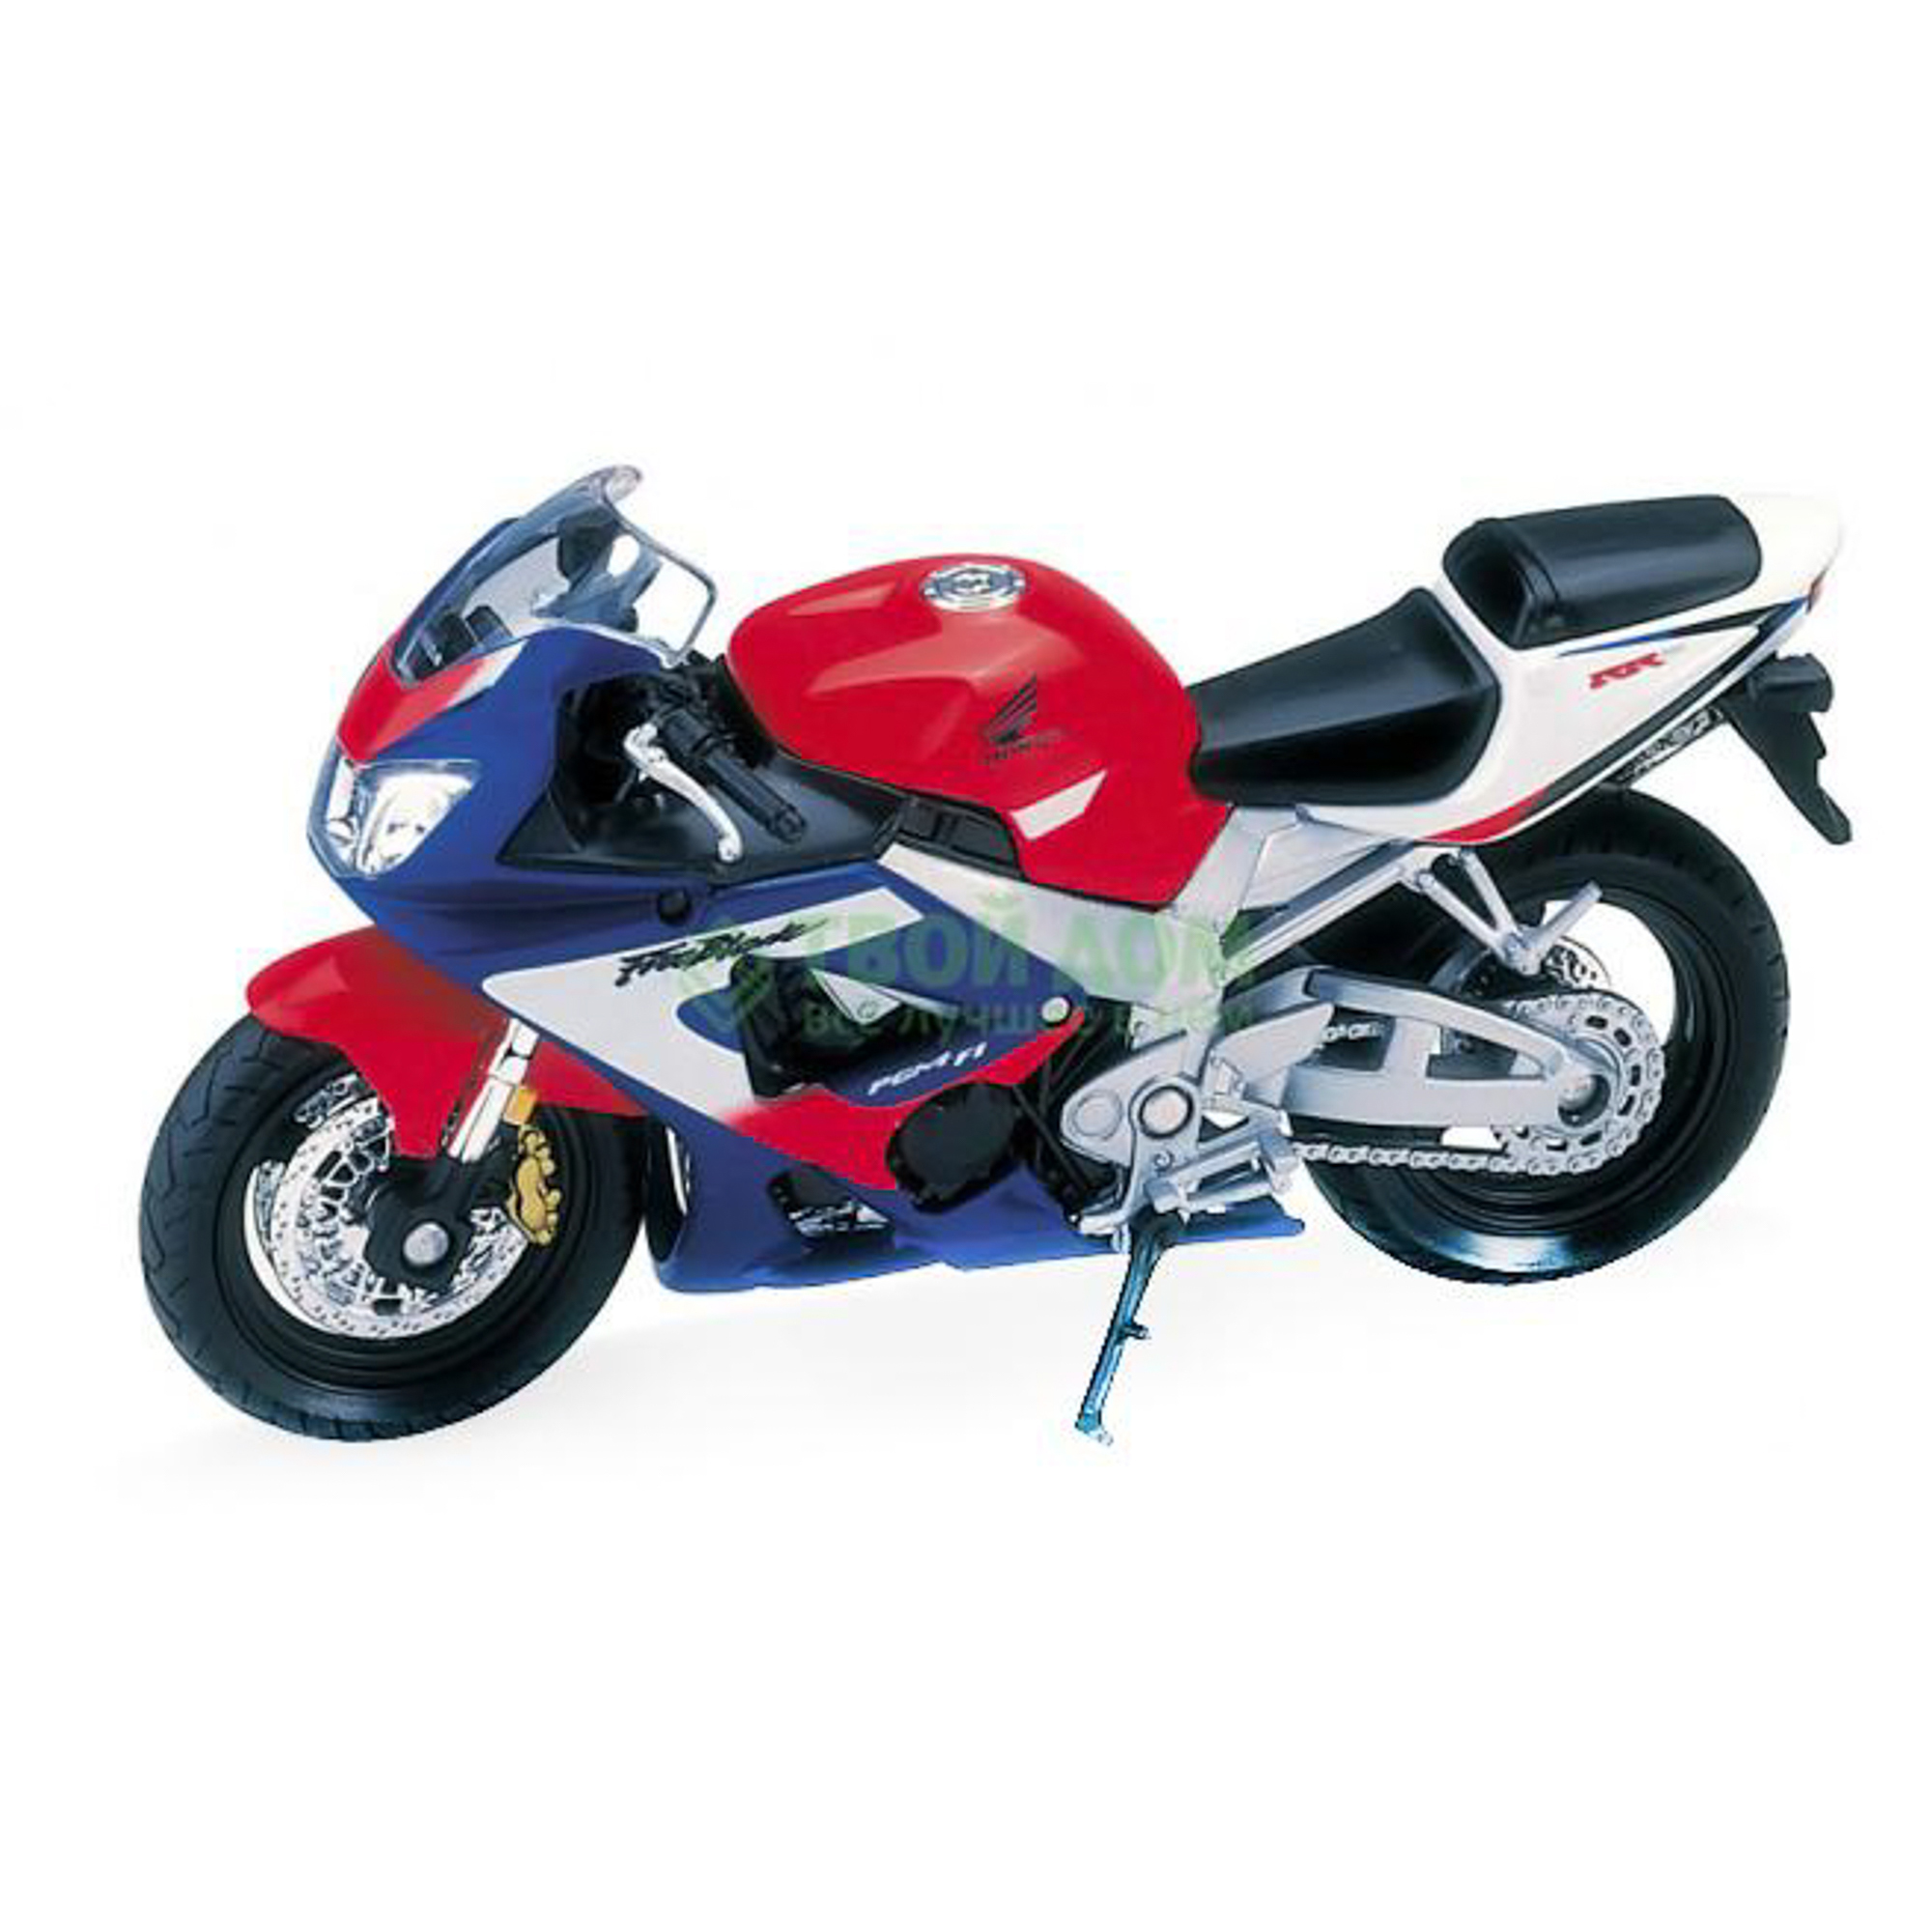 Мотоциклы Welly 1:18 Motos Honda CBR900RR Fireblade (12164)